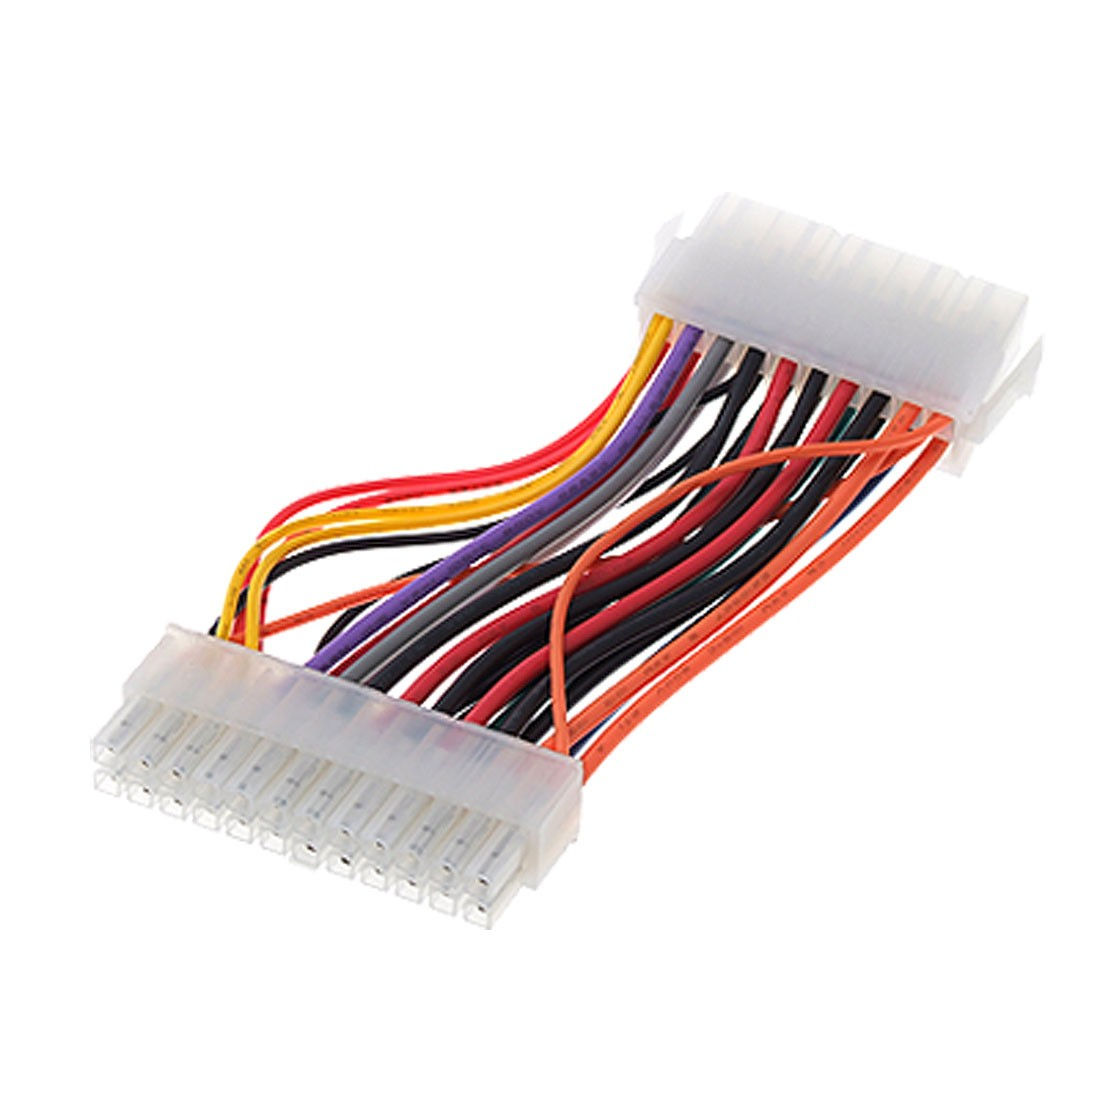 Mainboard Power Extension Cable